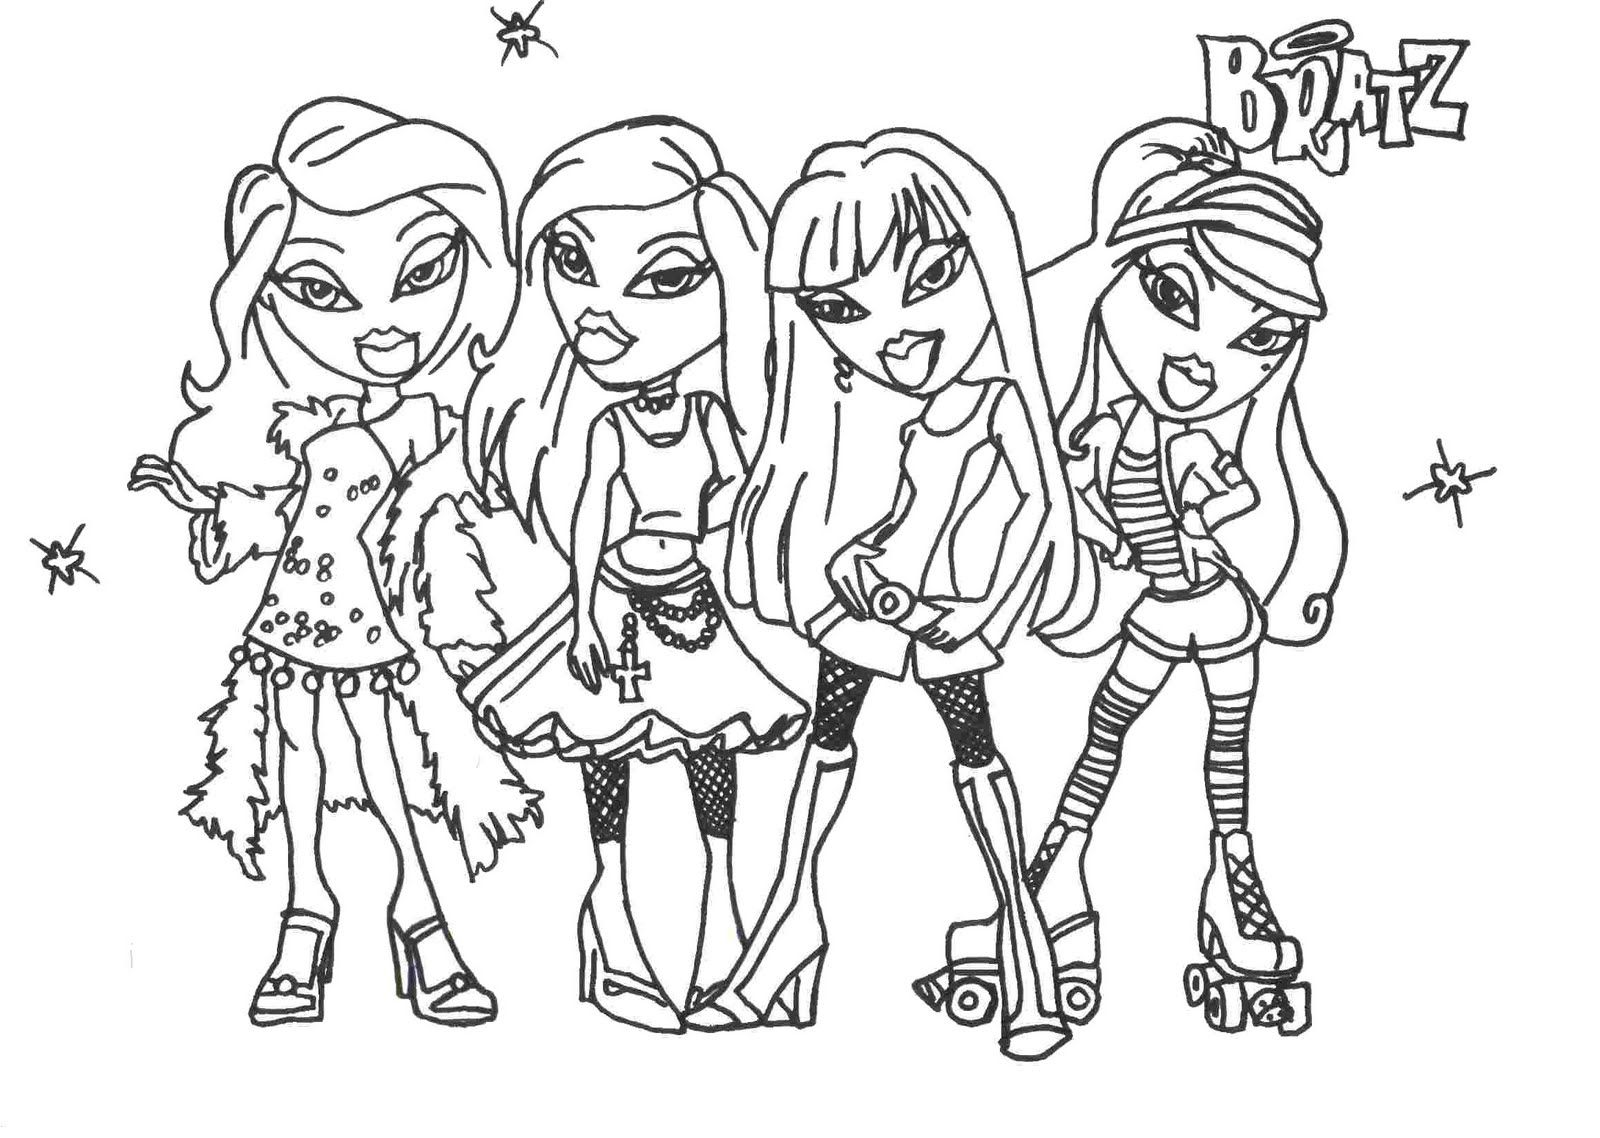 Bratz Glamor Girls Coloring Pages Princess Coloring Pages